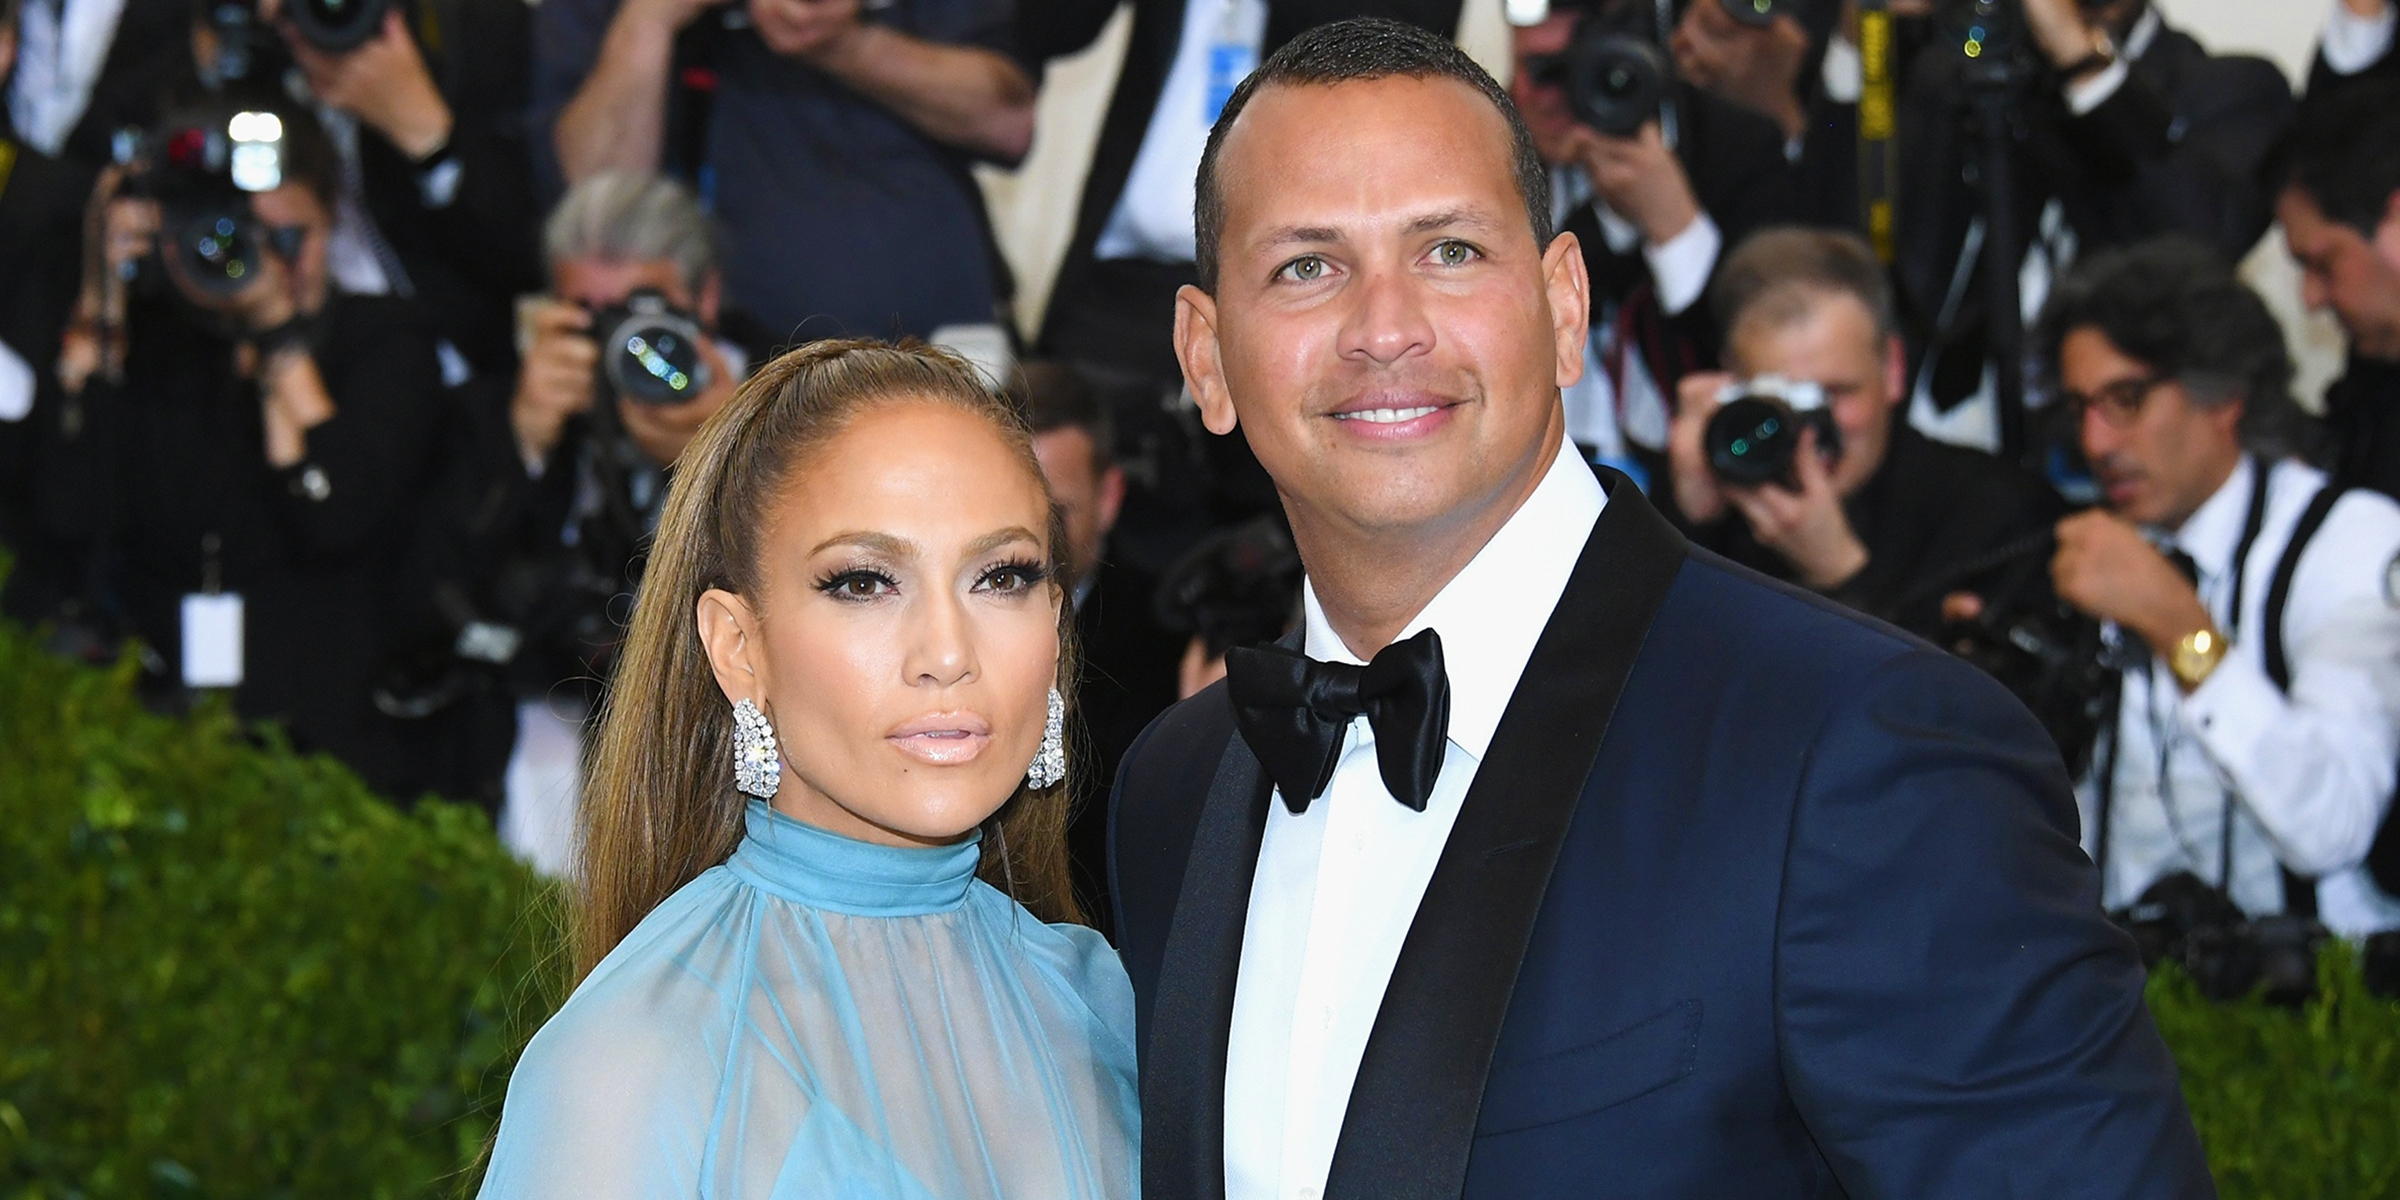 Jennifer Lopez reveals who will walk her down the aisle at her wedding